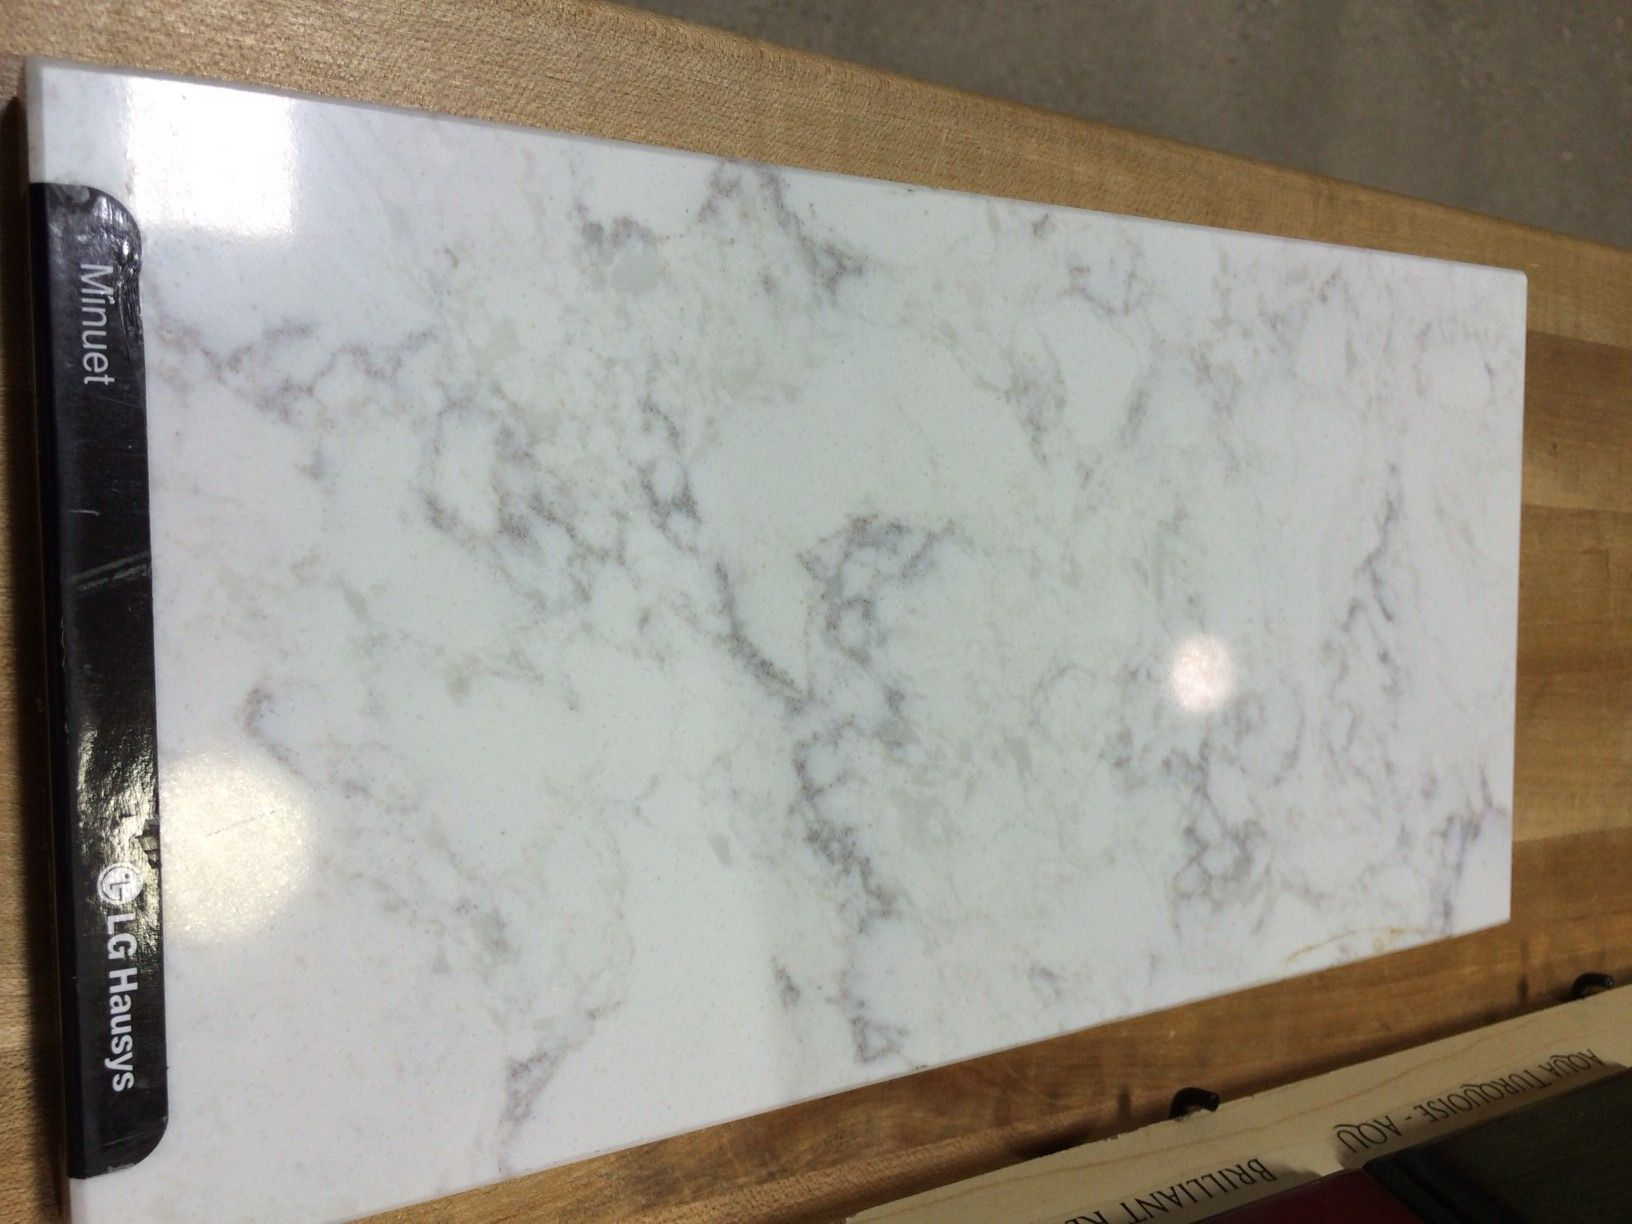 Marble Look Quartz Countertops : Quartz that looks like calacatta marble google search